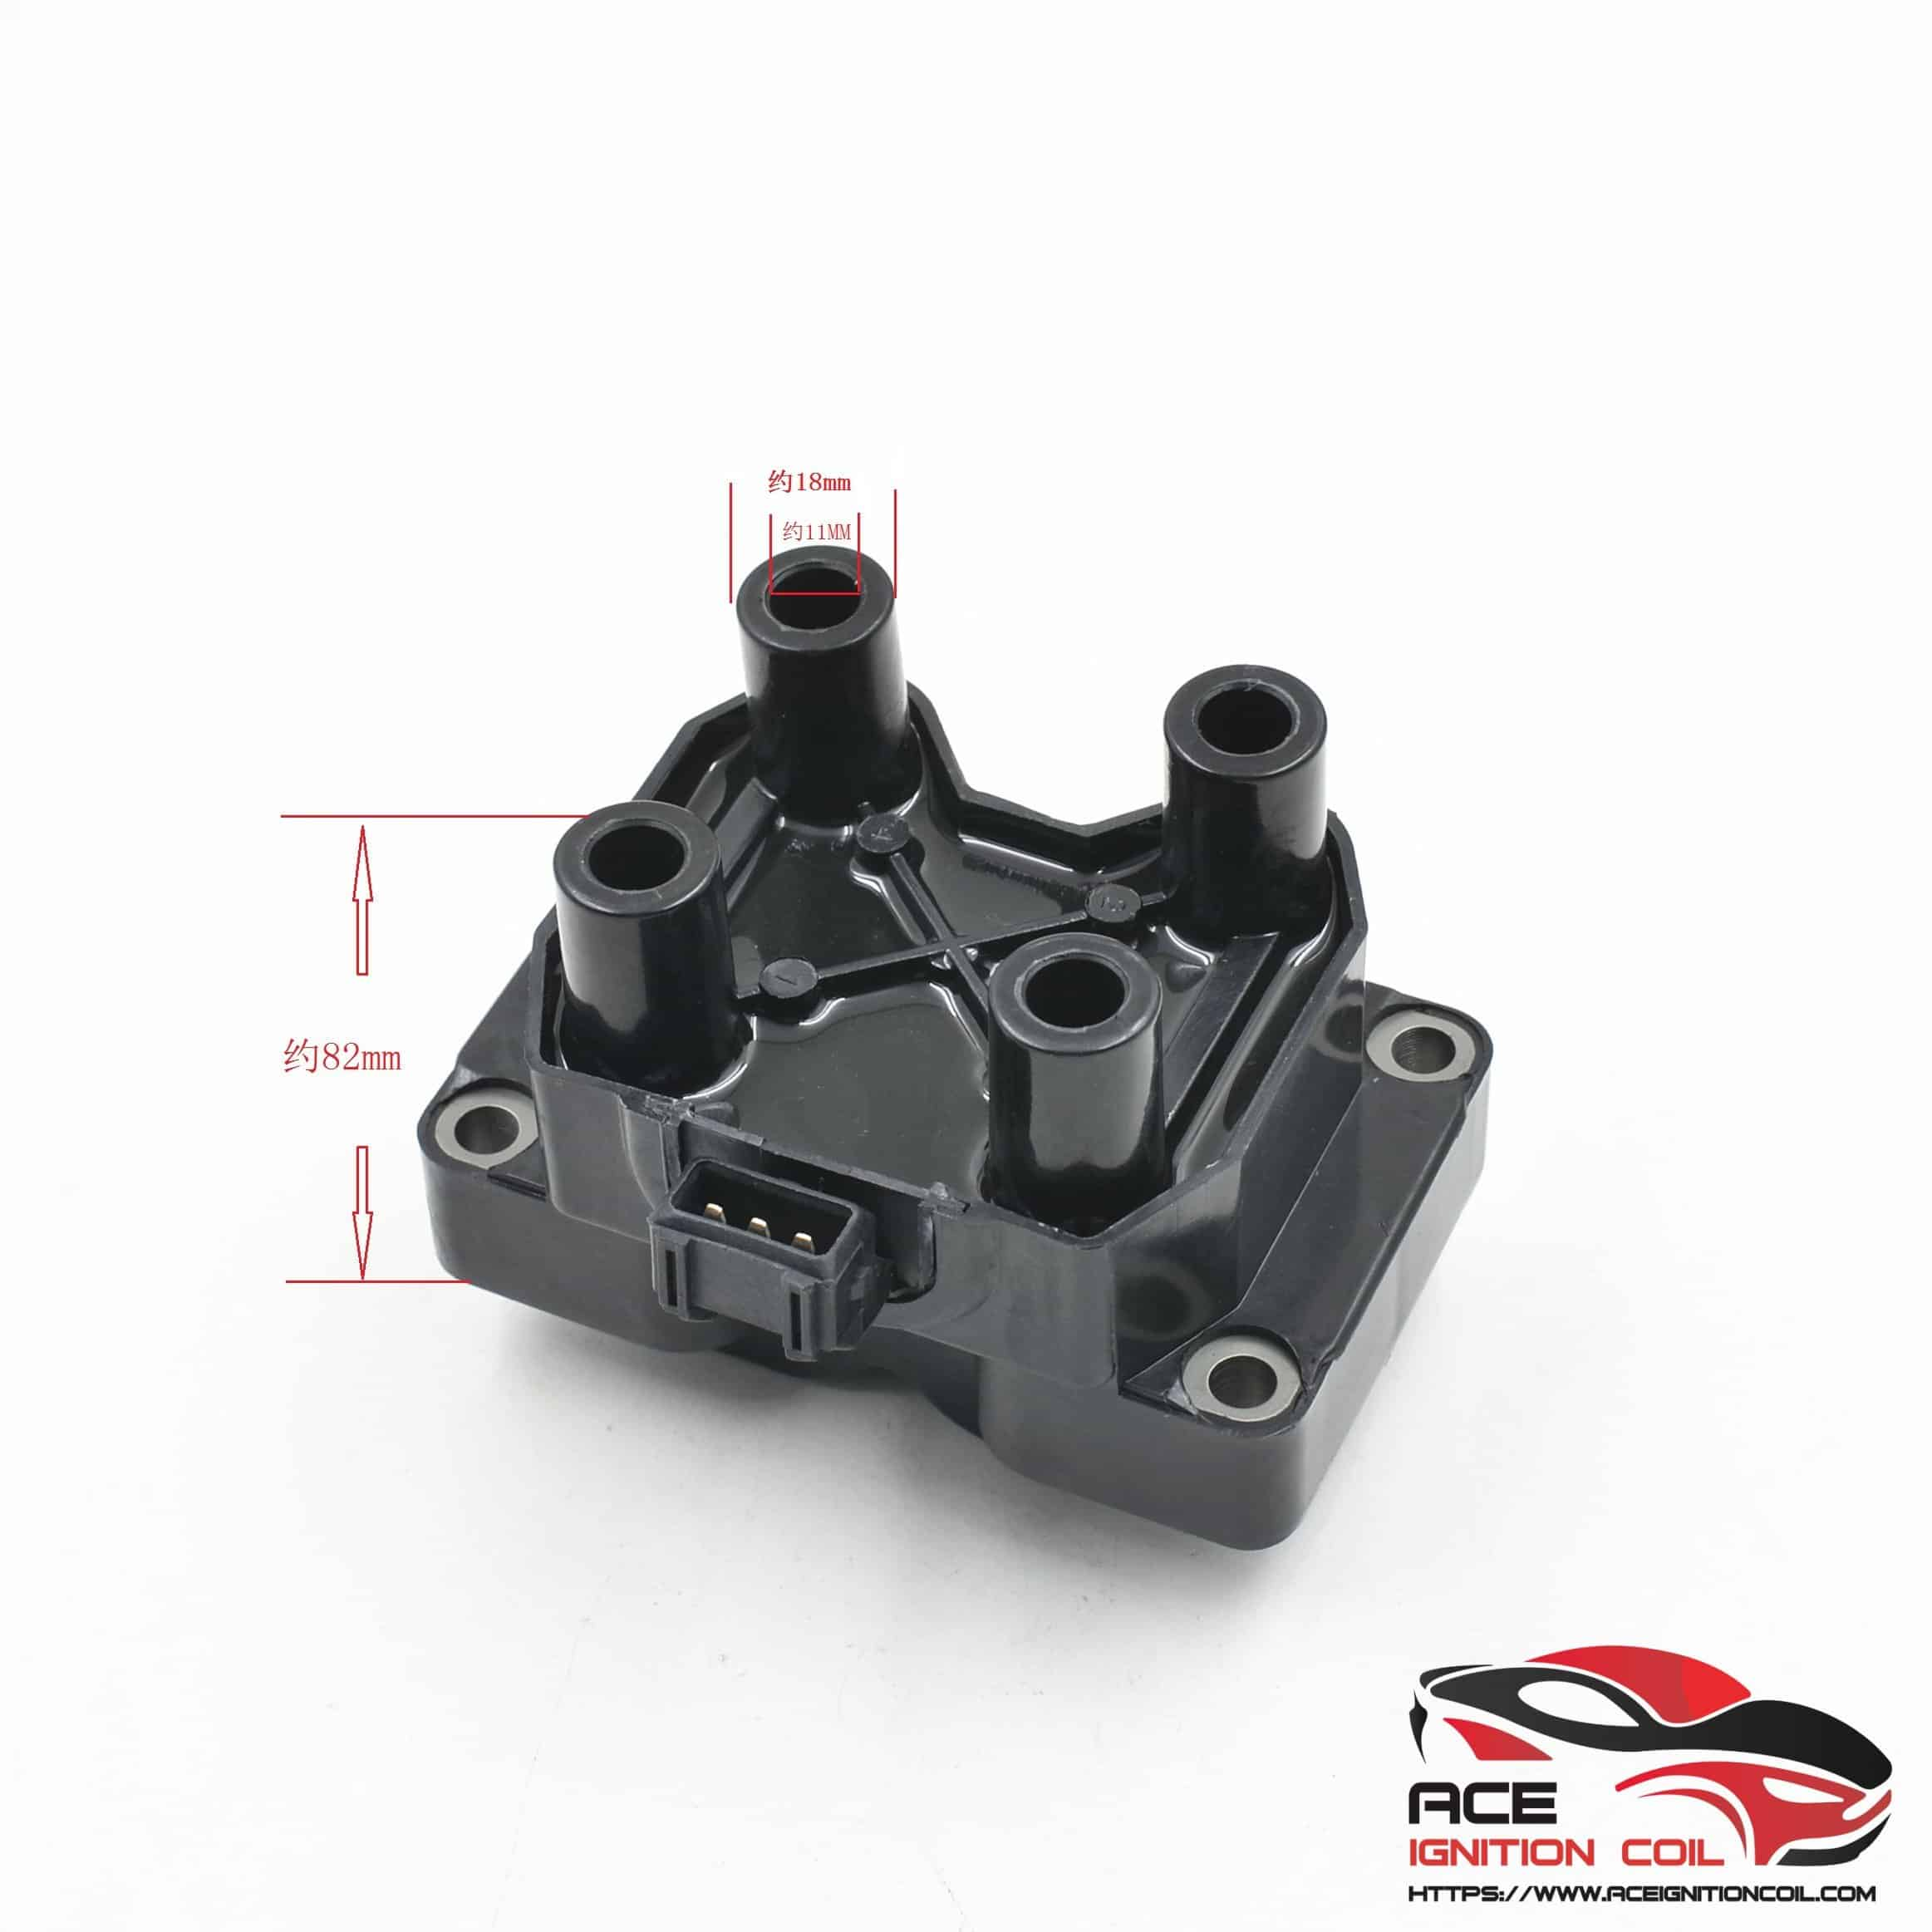 OPEL replacement  ignition coil 1208065